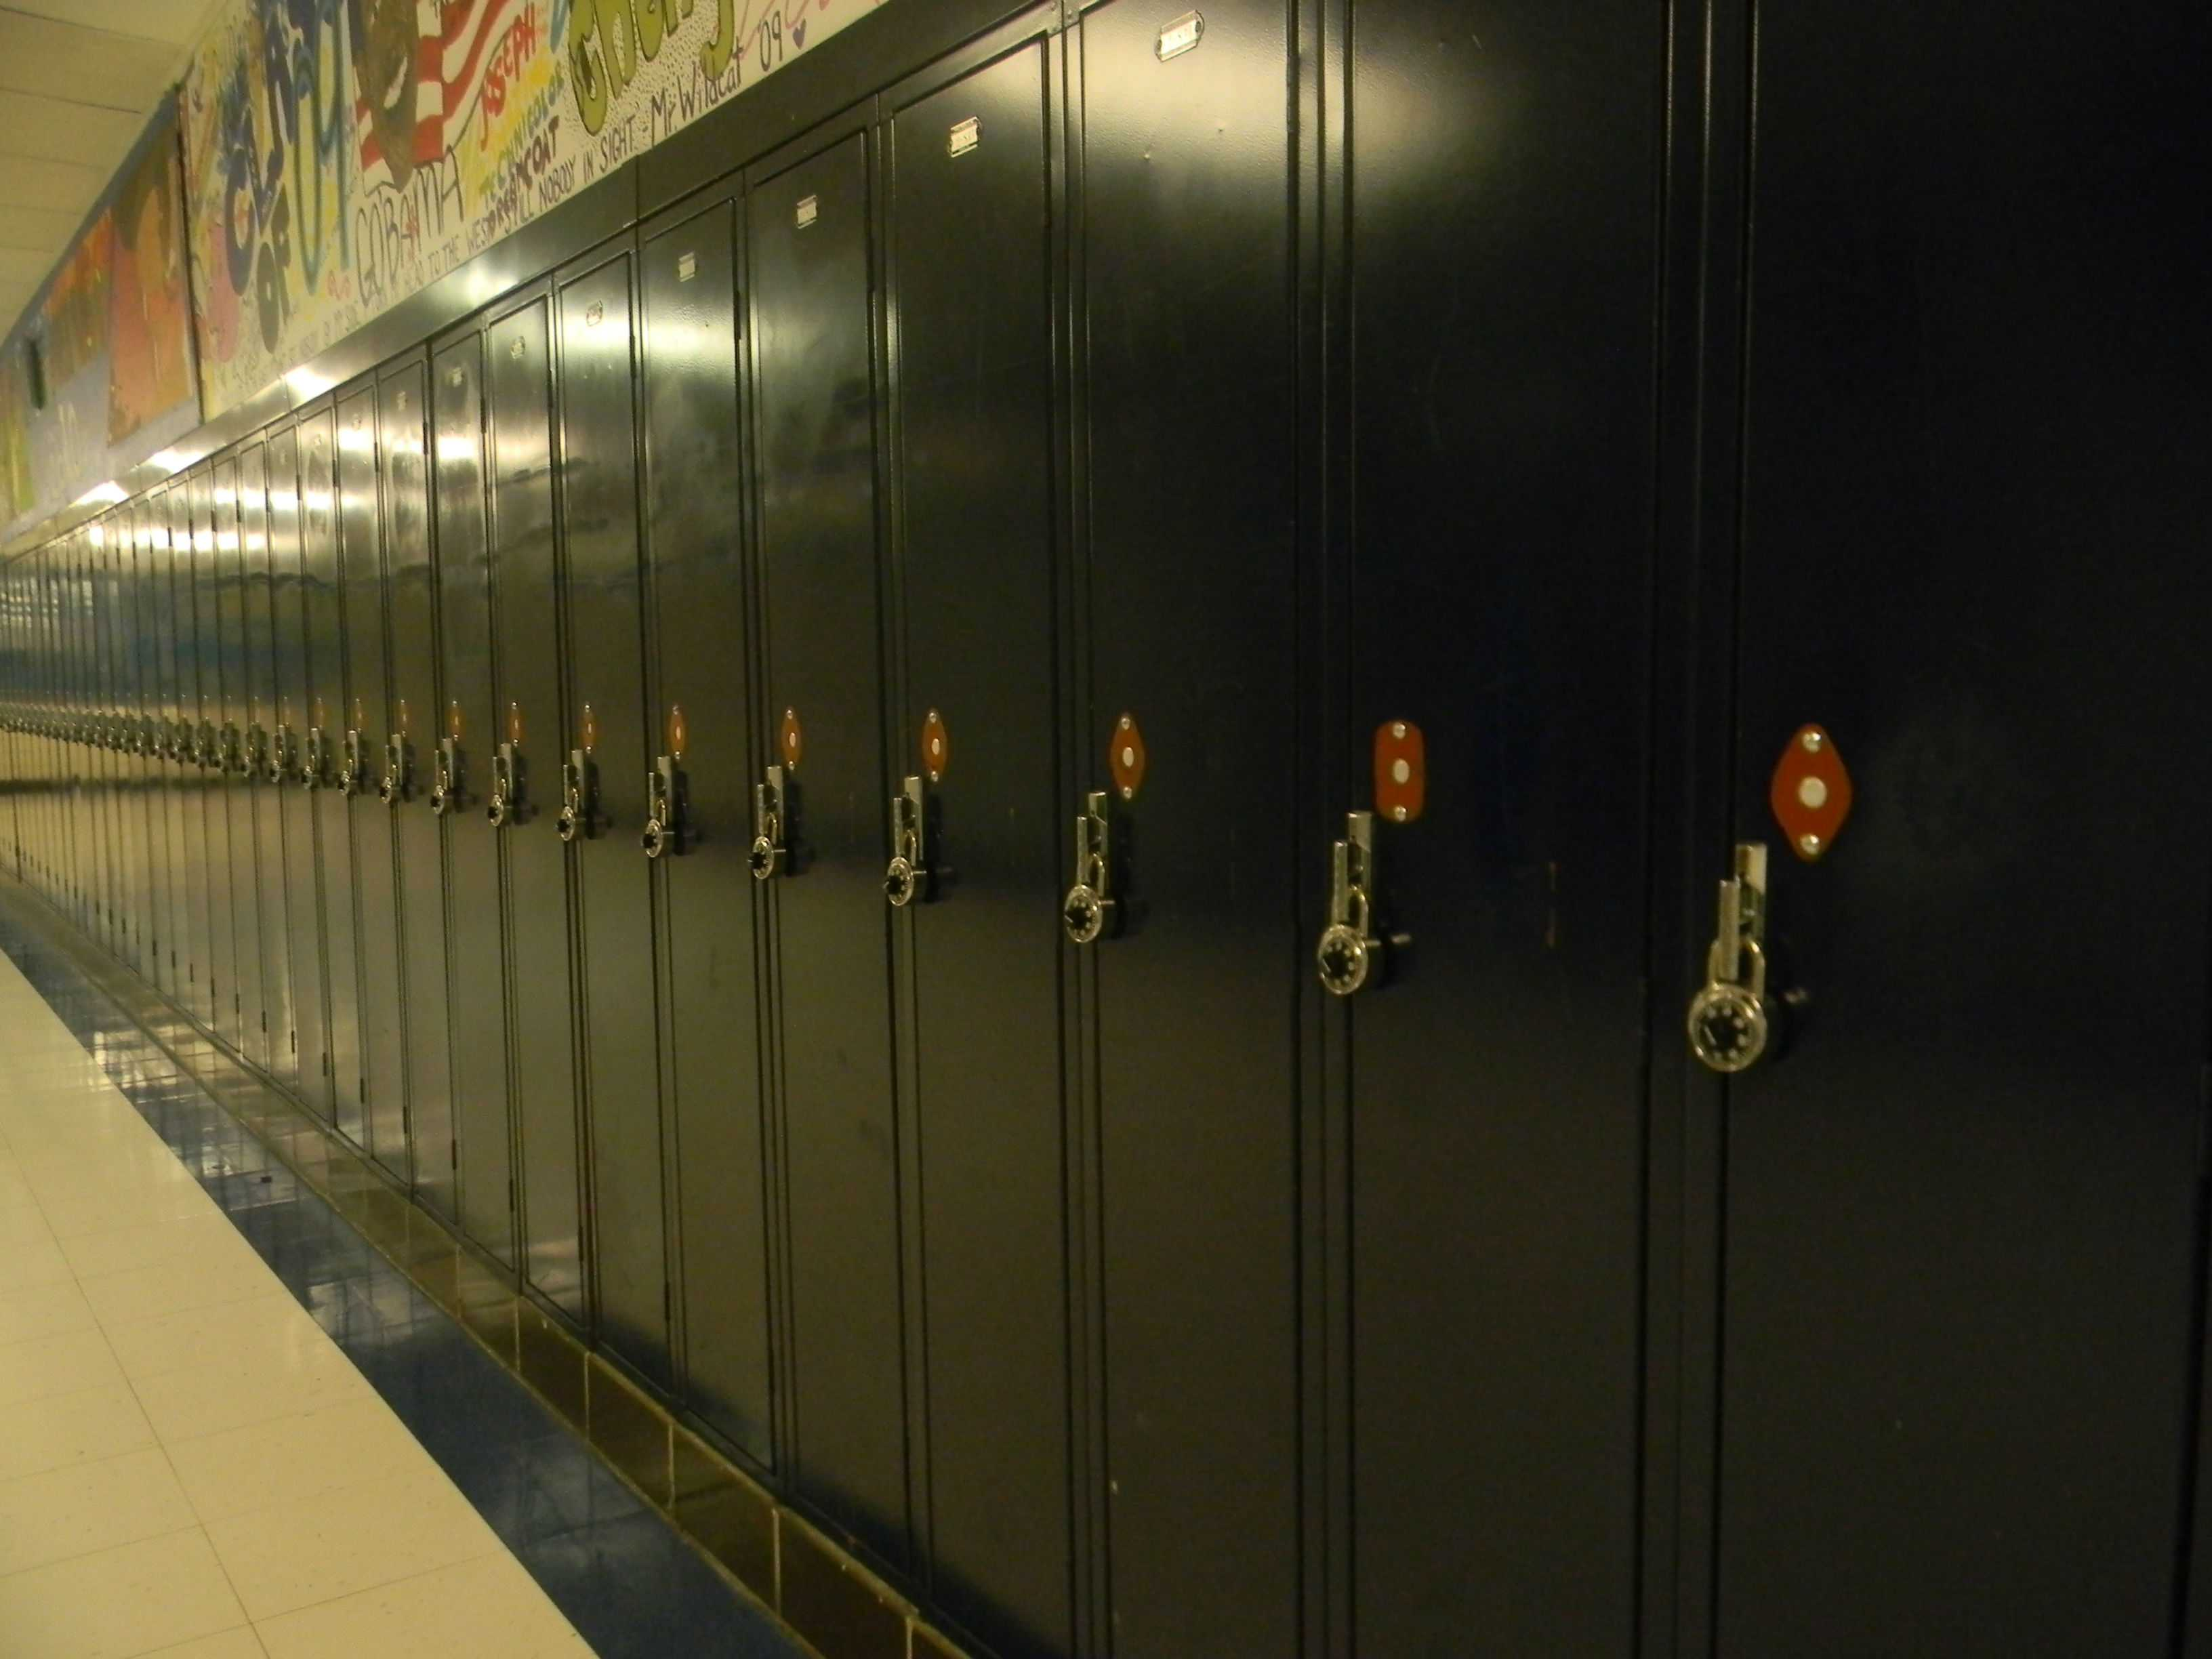 Students returned this school year to personal locks.